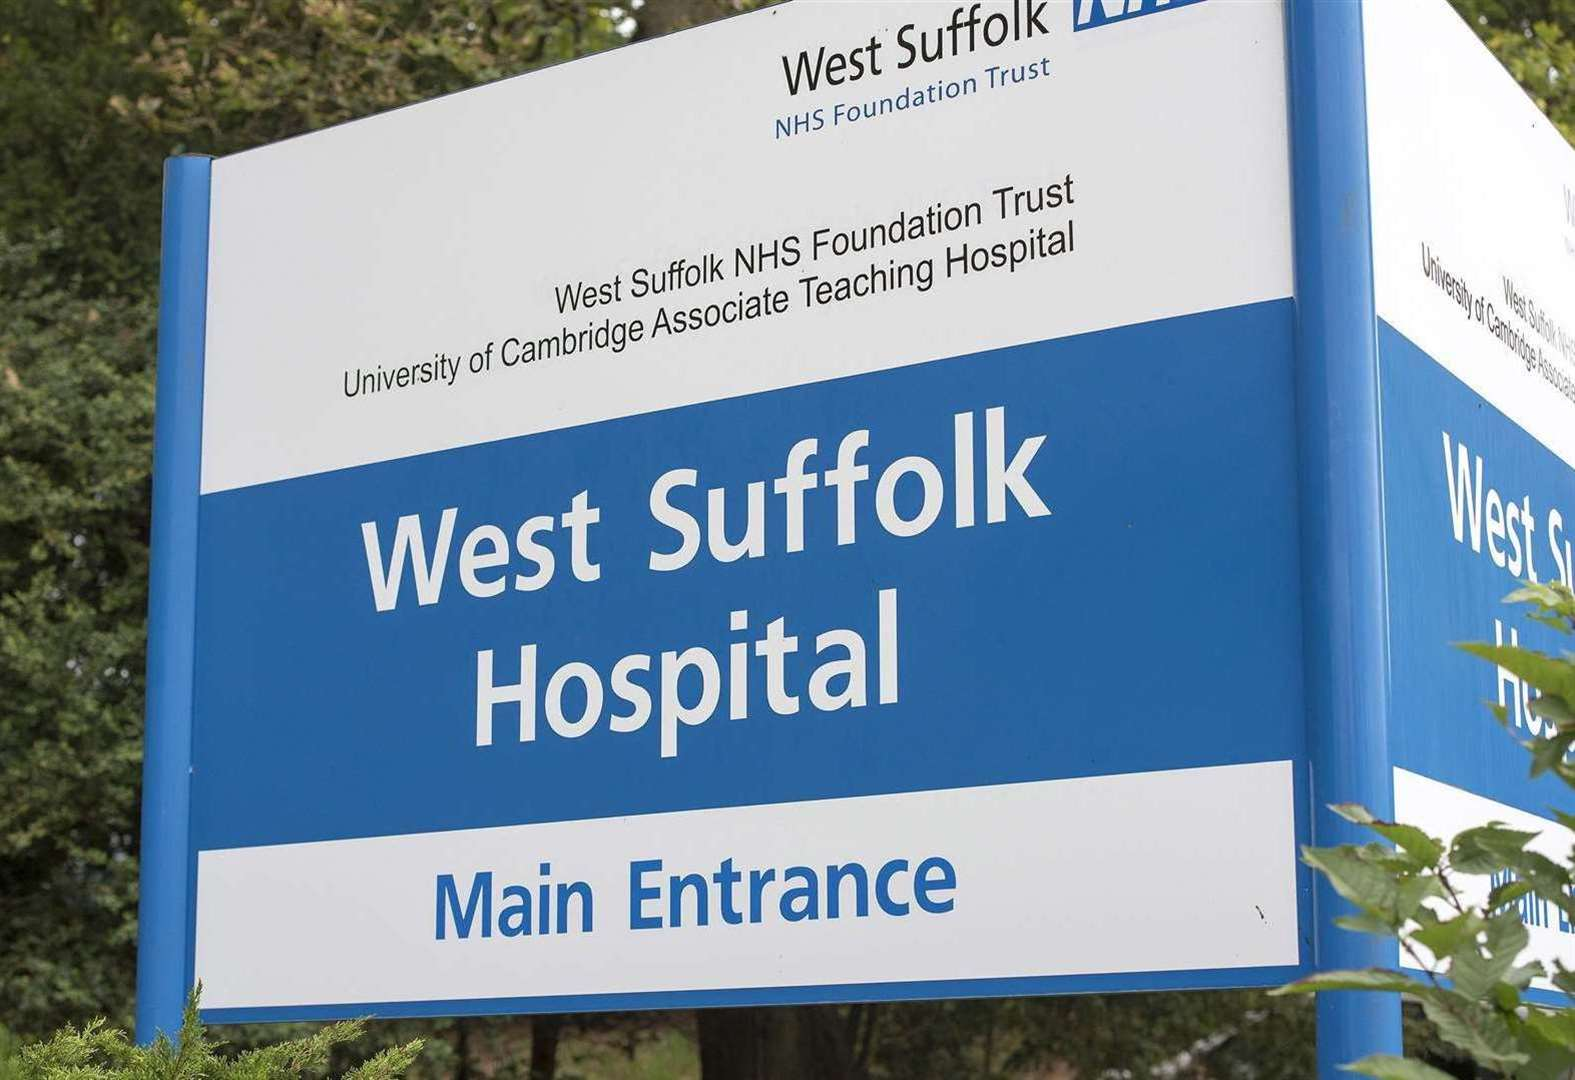 West Suffolk Hospital investigates issue that may have delayed patient case reviews